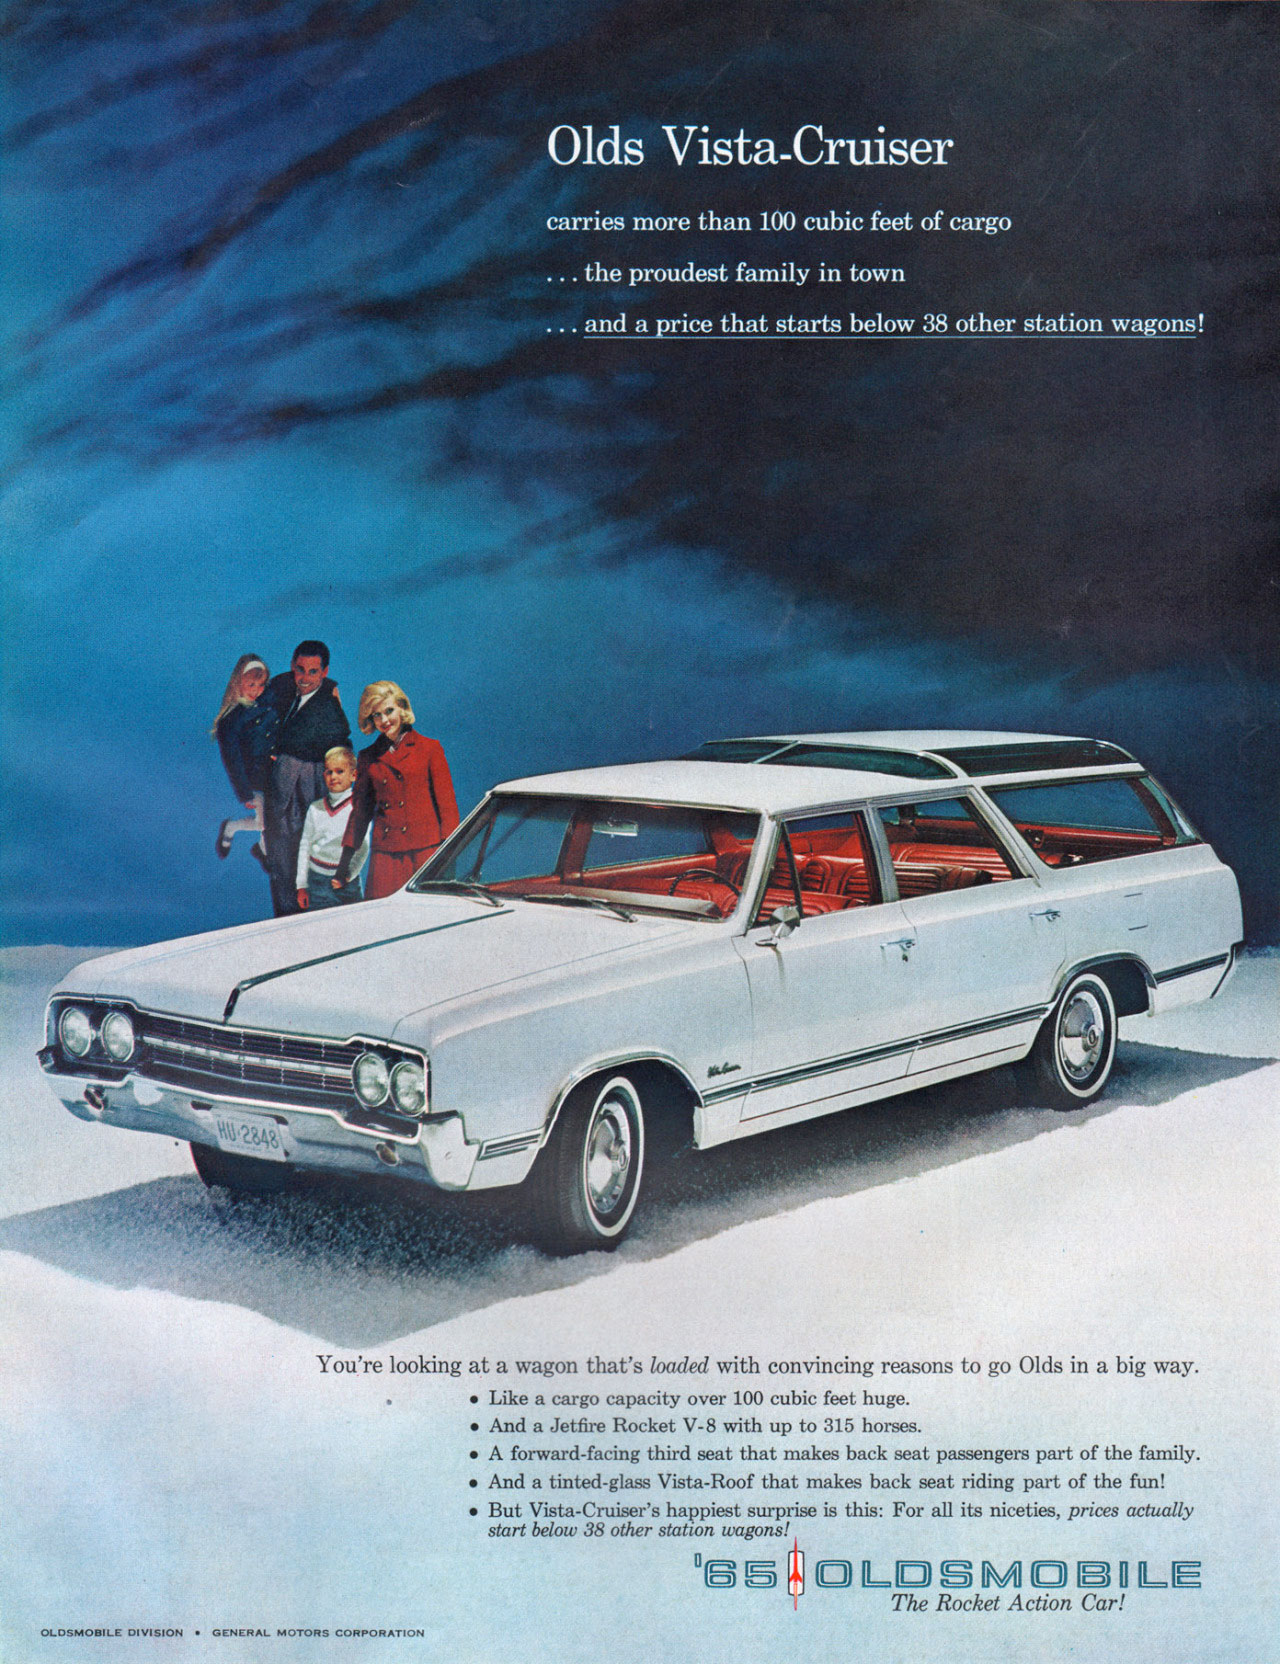 The 1965 Oldsmobile Vista-Cruiser carries more than 100 cubic feet of cargo, the proudest family in town and a price that starts below 38 other station wagons! You're looking at a wagon that's loaded with convincing reasons to go Olds in a big way. • Like a cargo capacity over 100 cubic feet huge. • And a Jetfire Rocket V-8 with up to 315 horses. • A forward-facing third mat that makes back seat passengers part of the family. • And a tinted-glass Vista-Roof that makes back mat riding part of the fun! • But Vista-Cruiser's happiest surprise is this: For all its niceties, prices actually start below 38 other station wagons! 1186[tOLIDGMCDEDOLE The Rocket Action Car! OLDSMOBILE DIVISION • GENERAL MOTORS CORPORATION